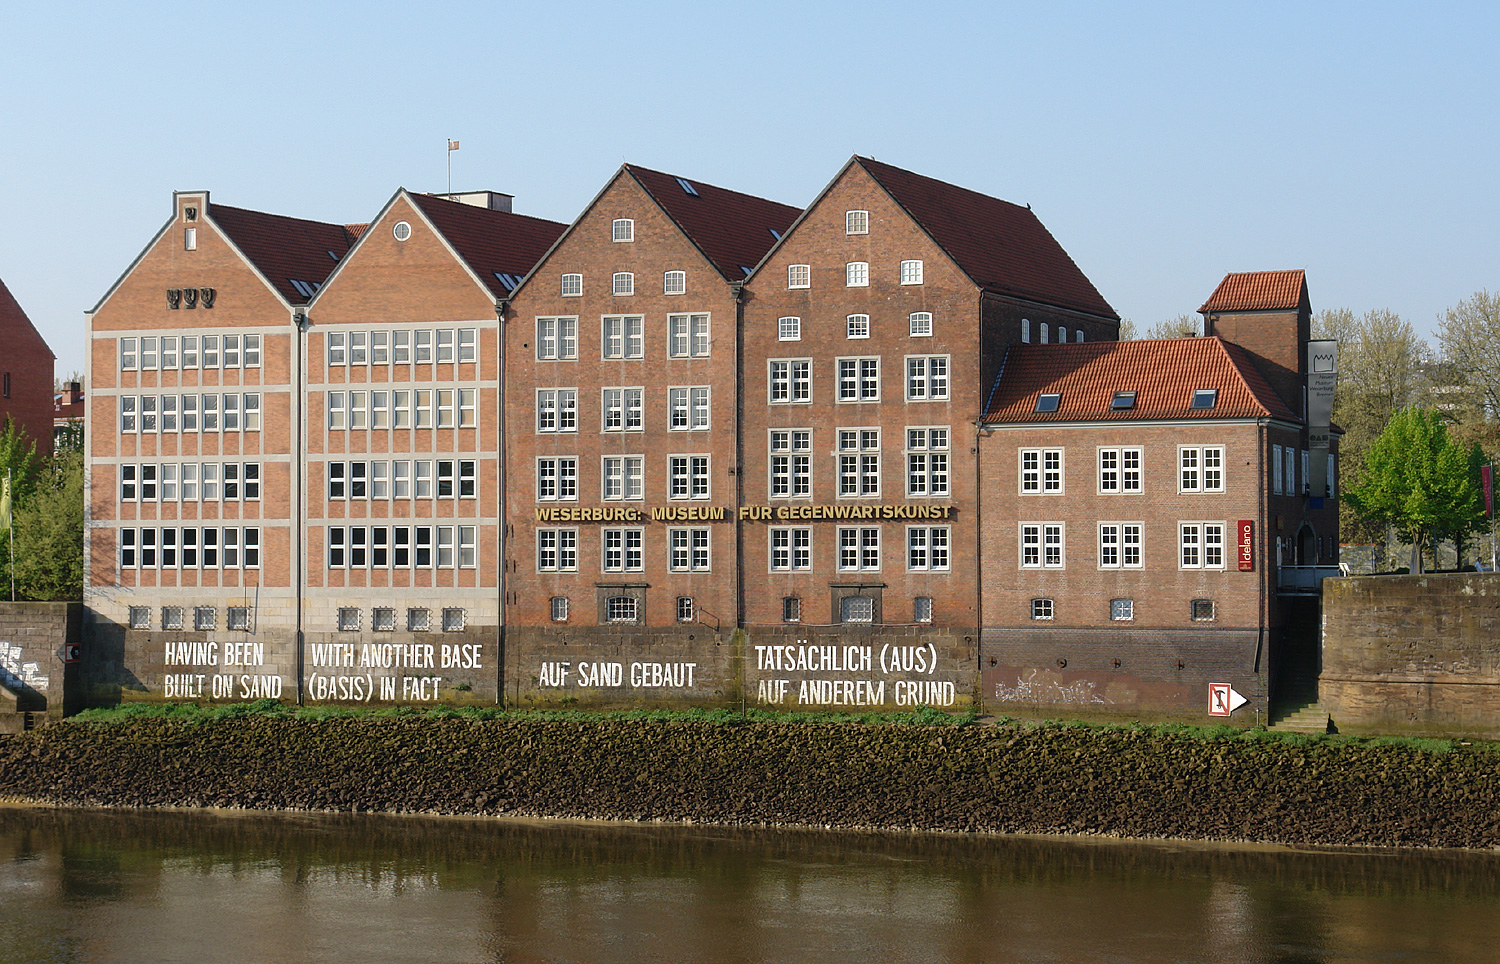 The Weserburg Musseum, Bremen. Photo by Jürgen Howaldt - Self-photographed, CC BY-SA 3.0 de, https://commons.wikimedia.org/w/index.php?curid=6616613